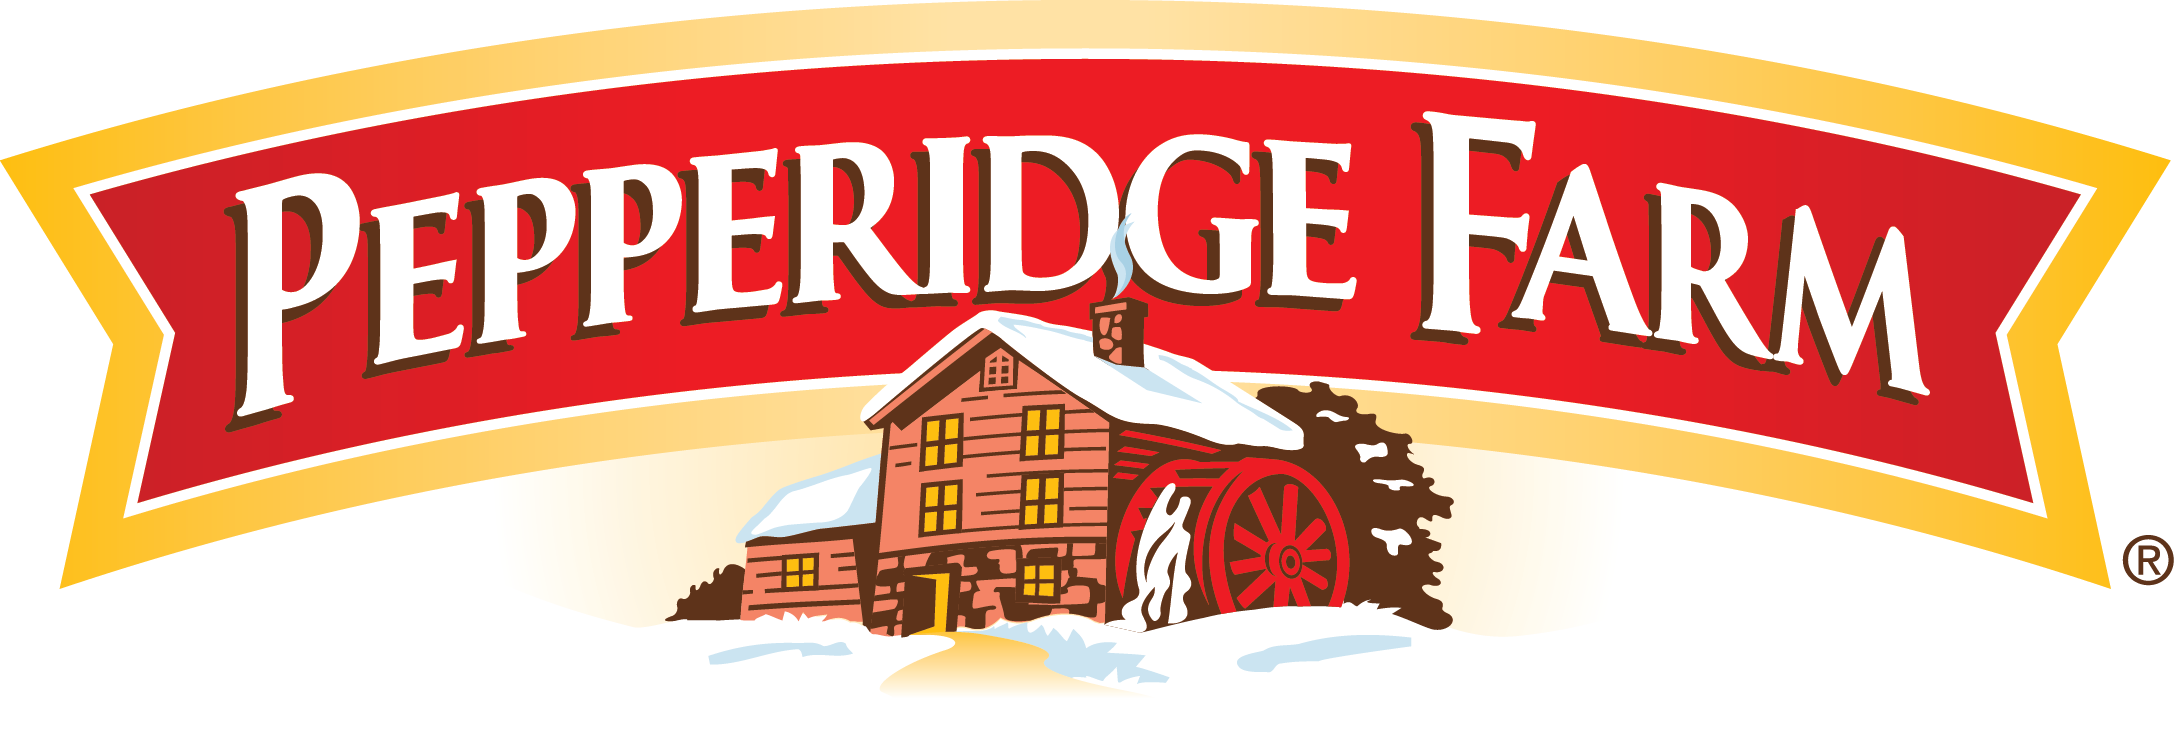 Logo - Pepperidge Farm